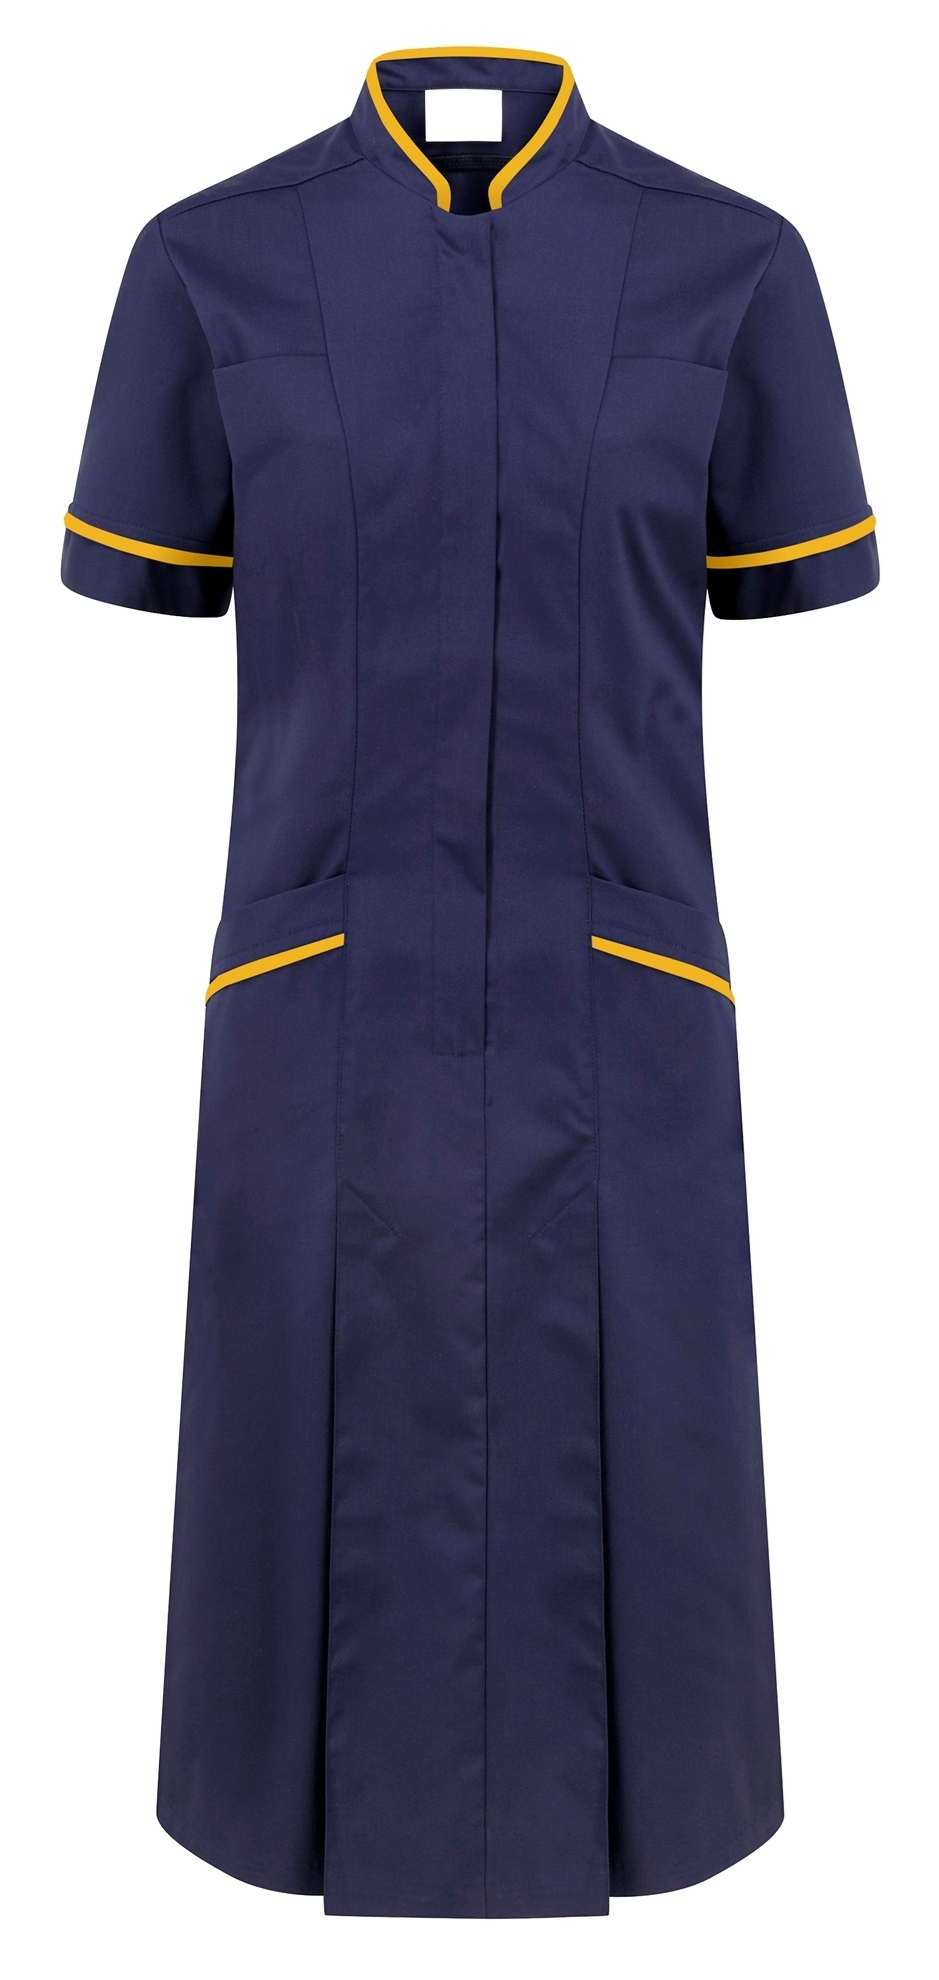 Picture of Professional Dress - Navy/Yellow